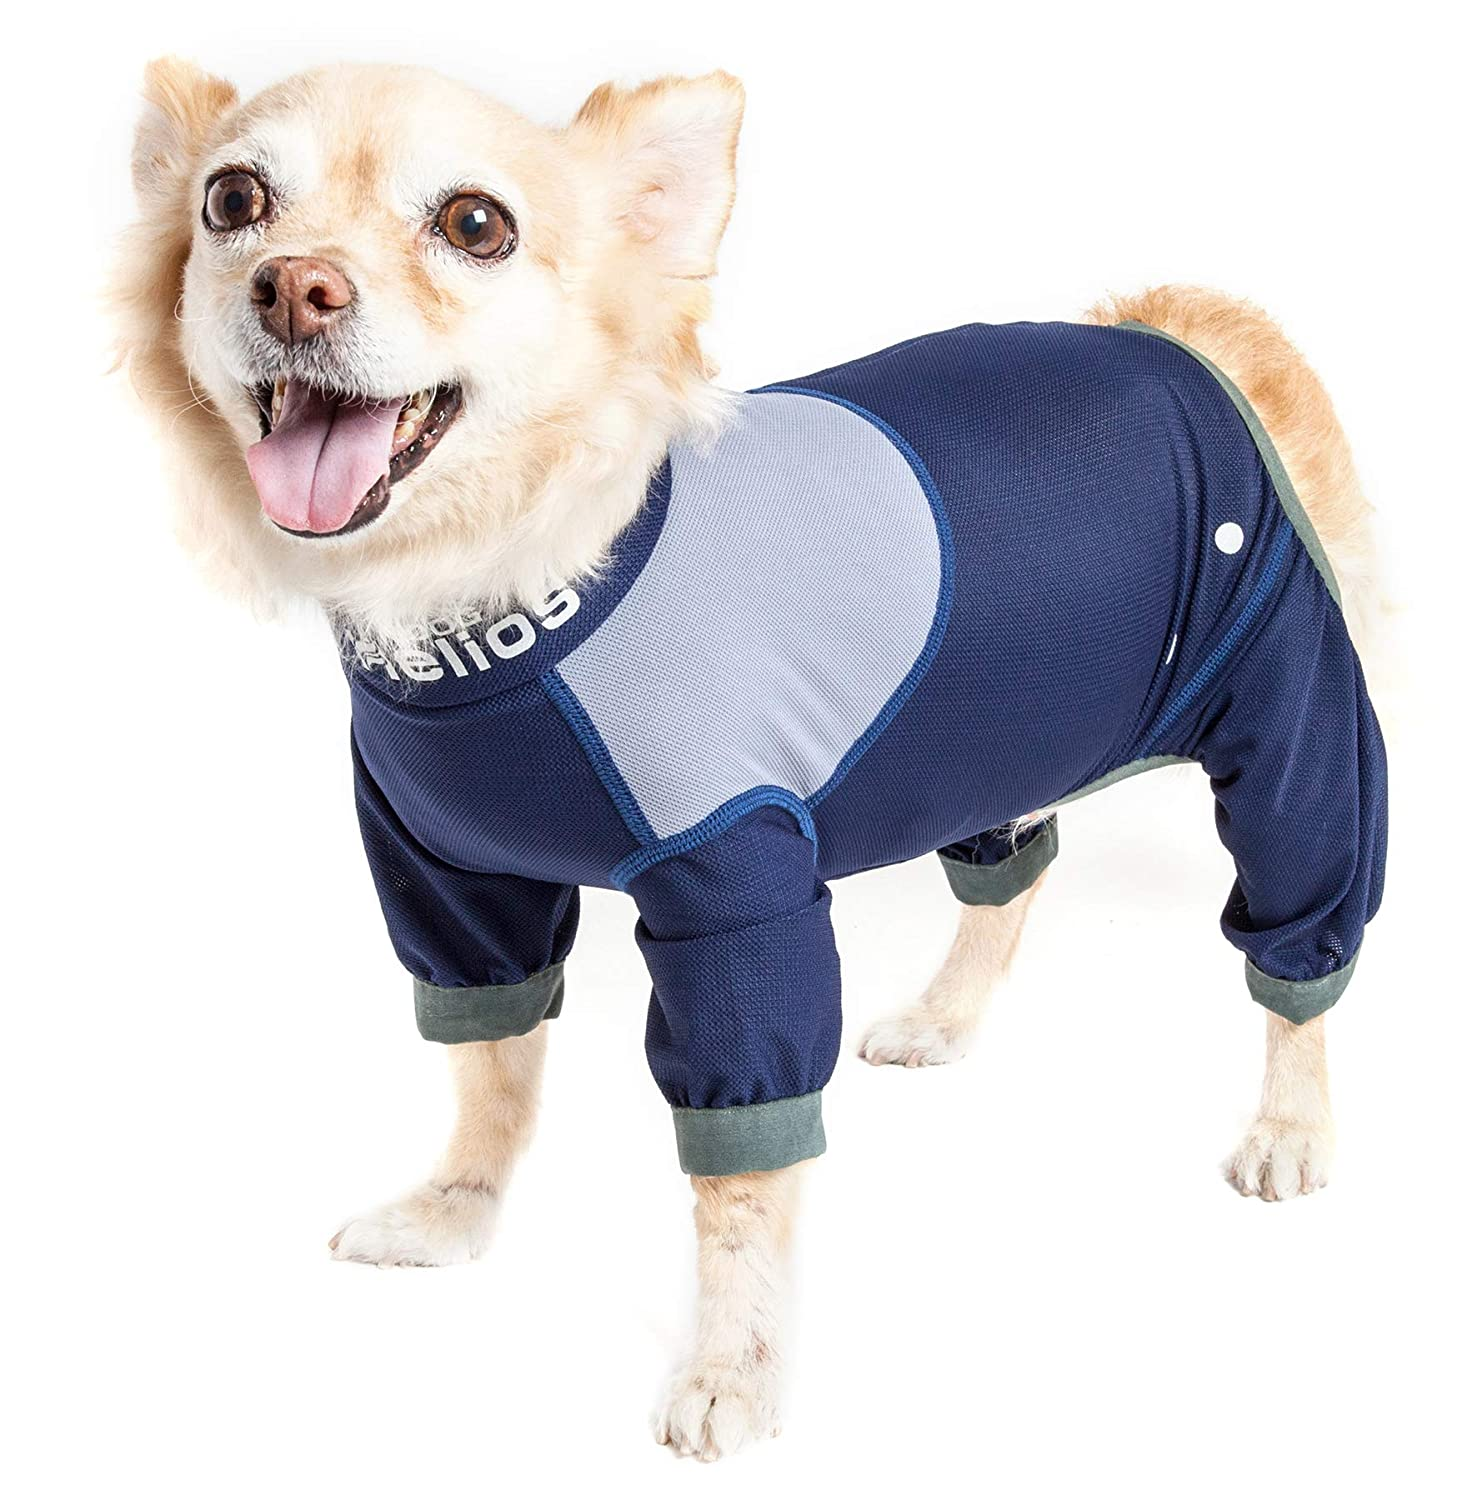 Dog Helios Tail Runner' Lightweight 4-Way-Stretch Breathable Full Bodied Performance Dog Track Suit, Large, bluee